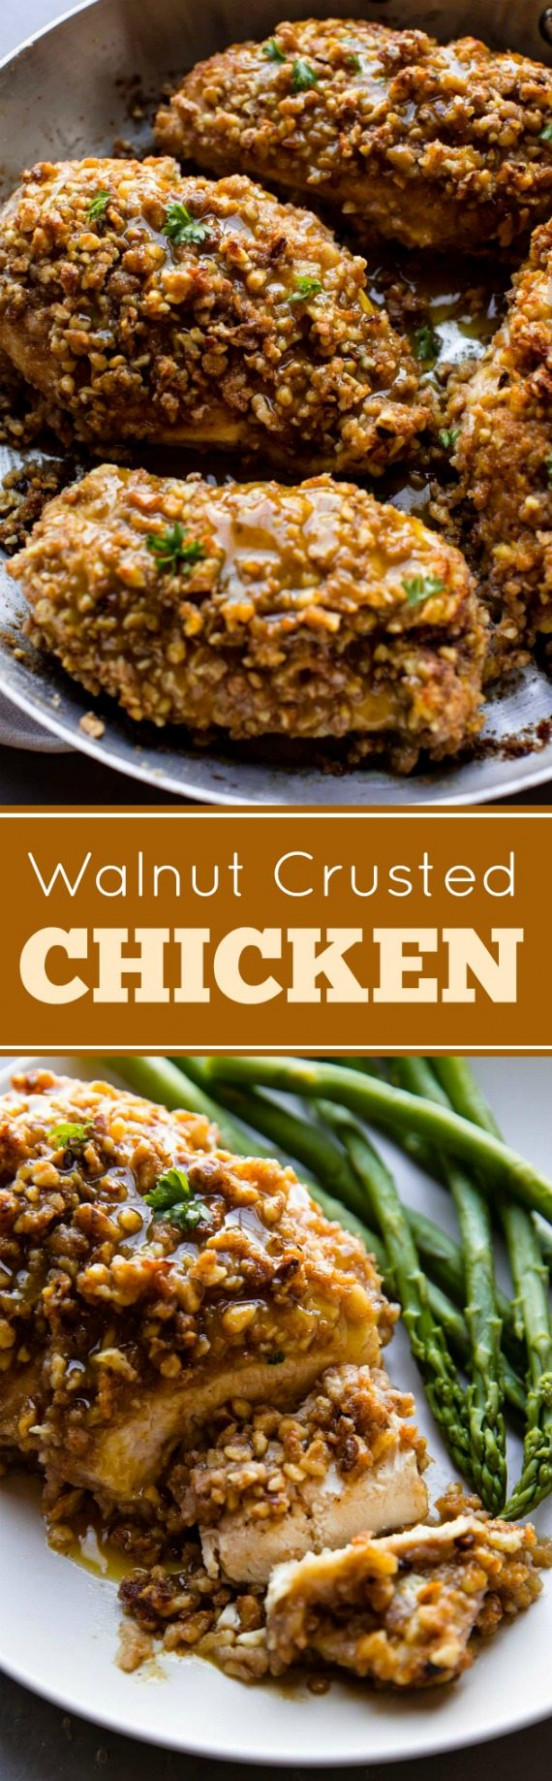 Unbelievable Walnut Crusted Chicken | Sally's Baking Addiction